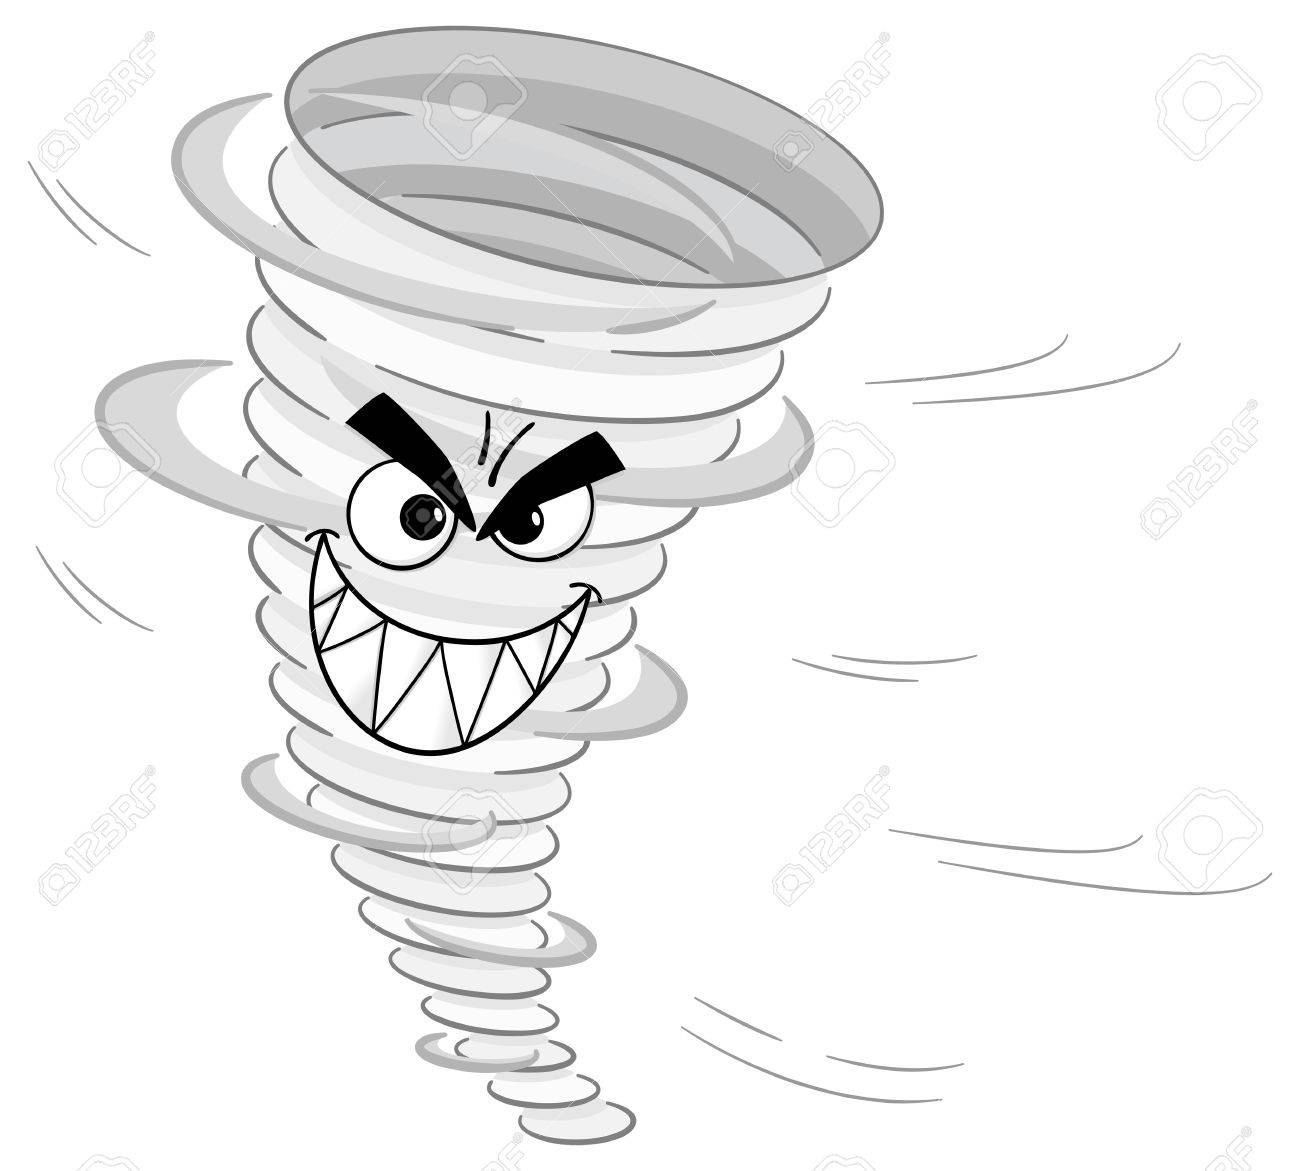 Coloring book page of a tornado - Tornado Cartoon Vector Illustration Of A Cartoon Tornado On White Background